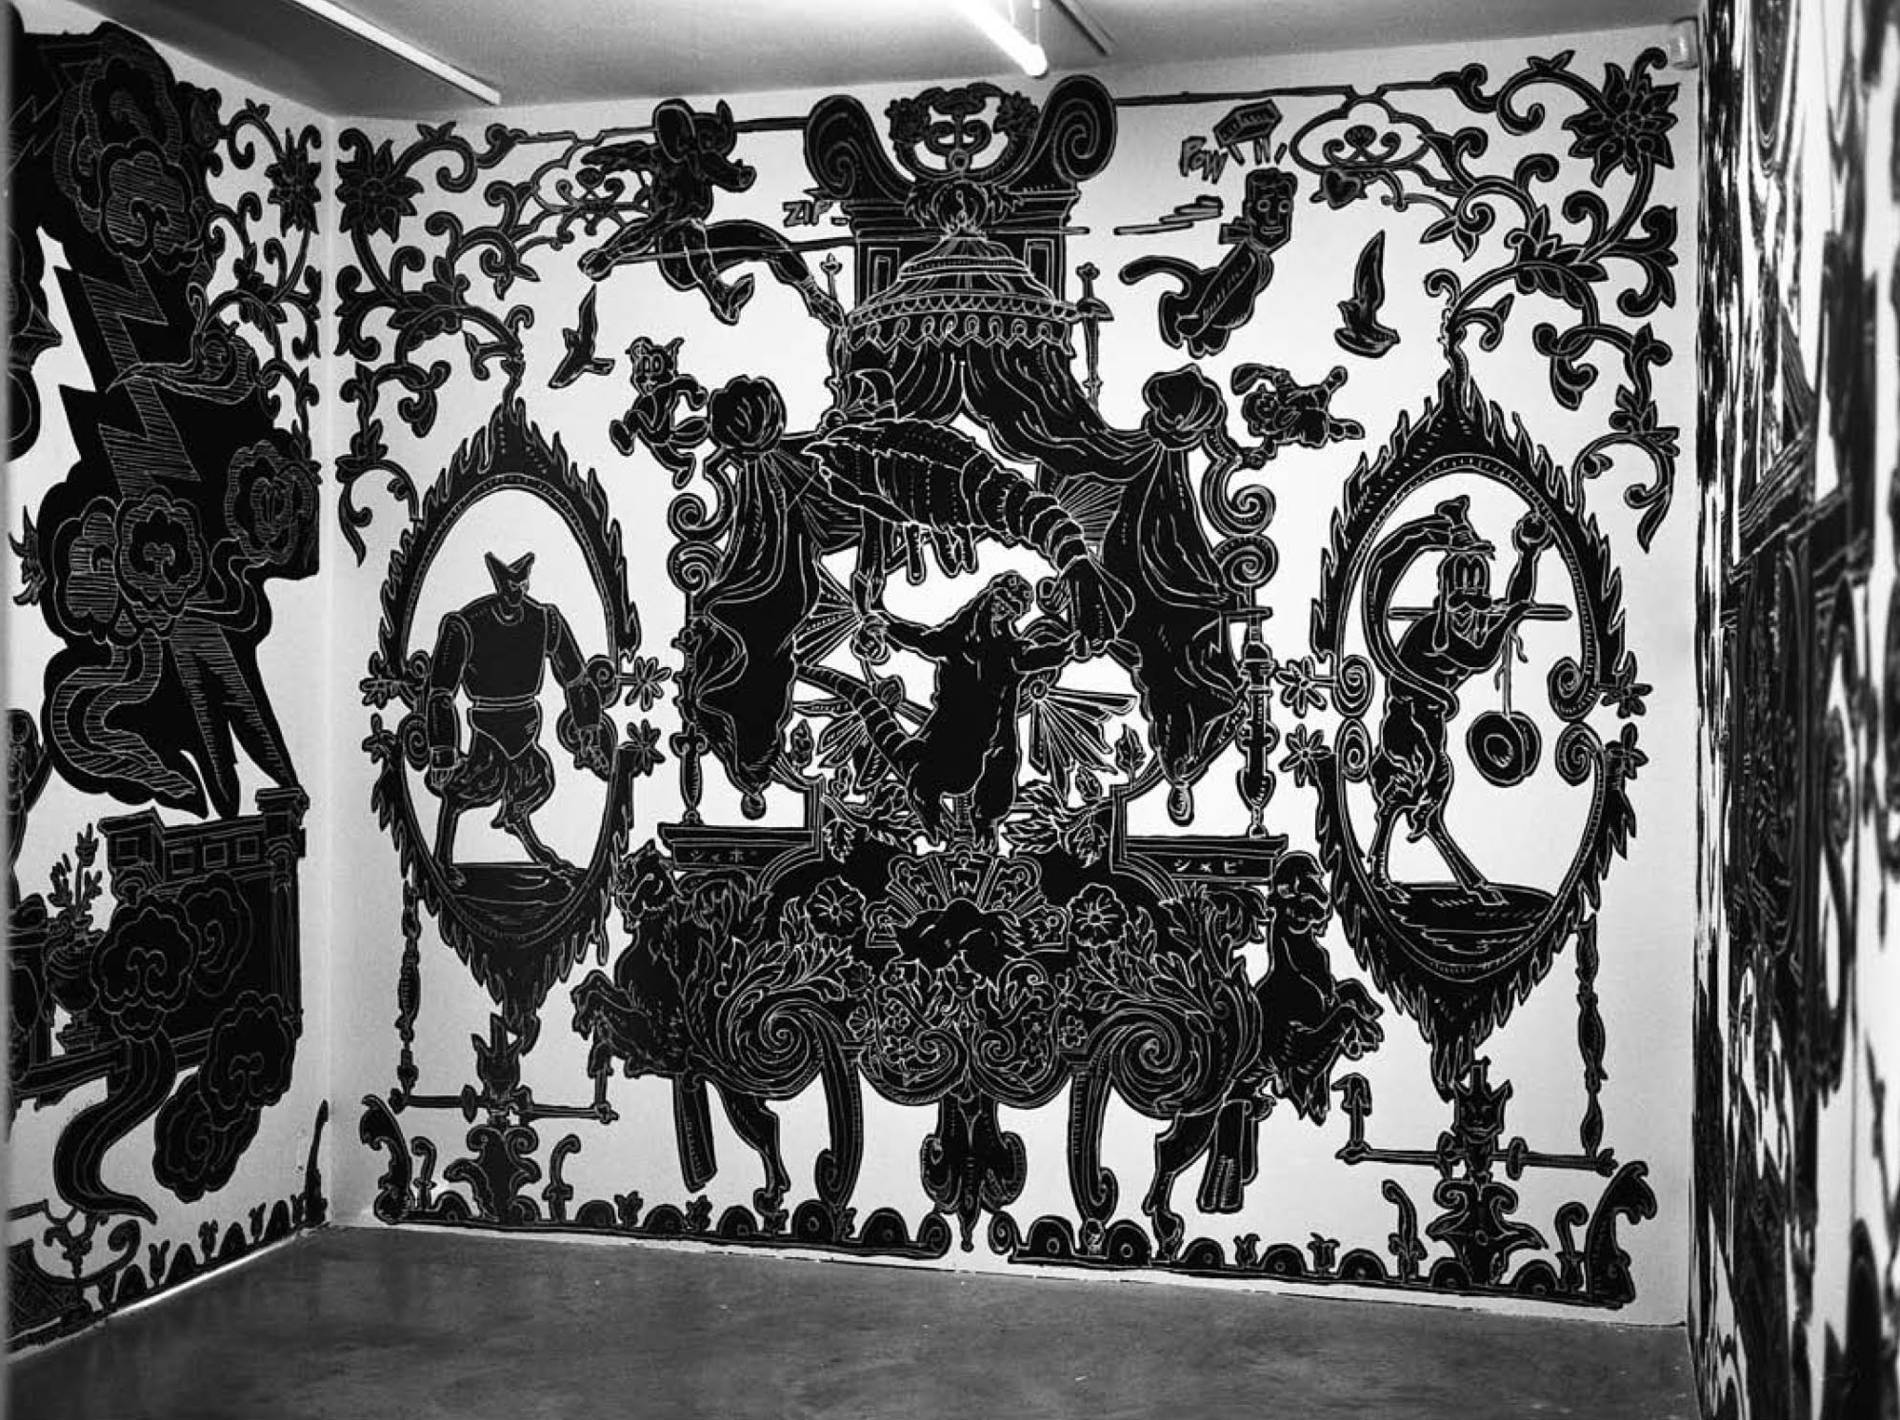 ·: Nicolas Buffe :· - Nicolas Buffe - 2007---12 - Studiolo @ La Maison Rouge, Paris - 01, 4 x 3 m : Ink, Markers on wall